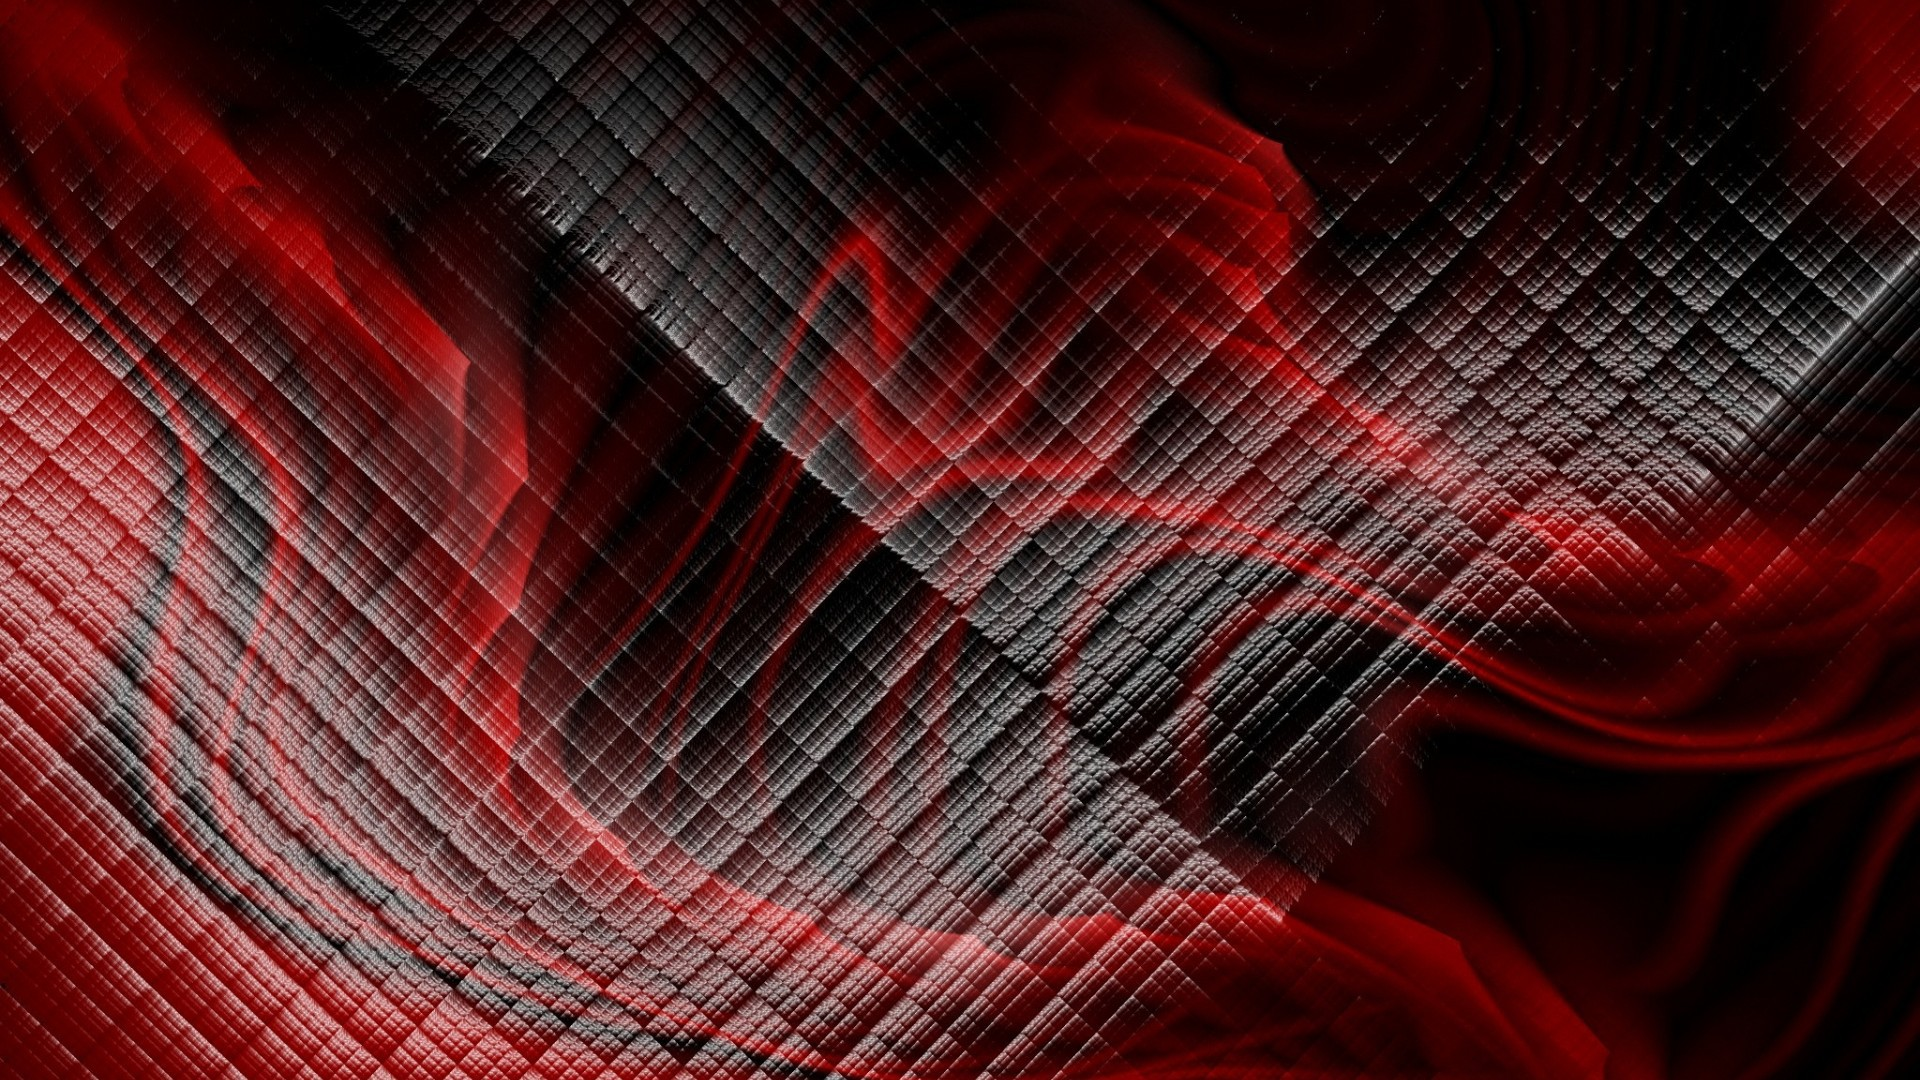 Red and black texture wallpapers and images   wallpapers pictures 1920x1080